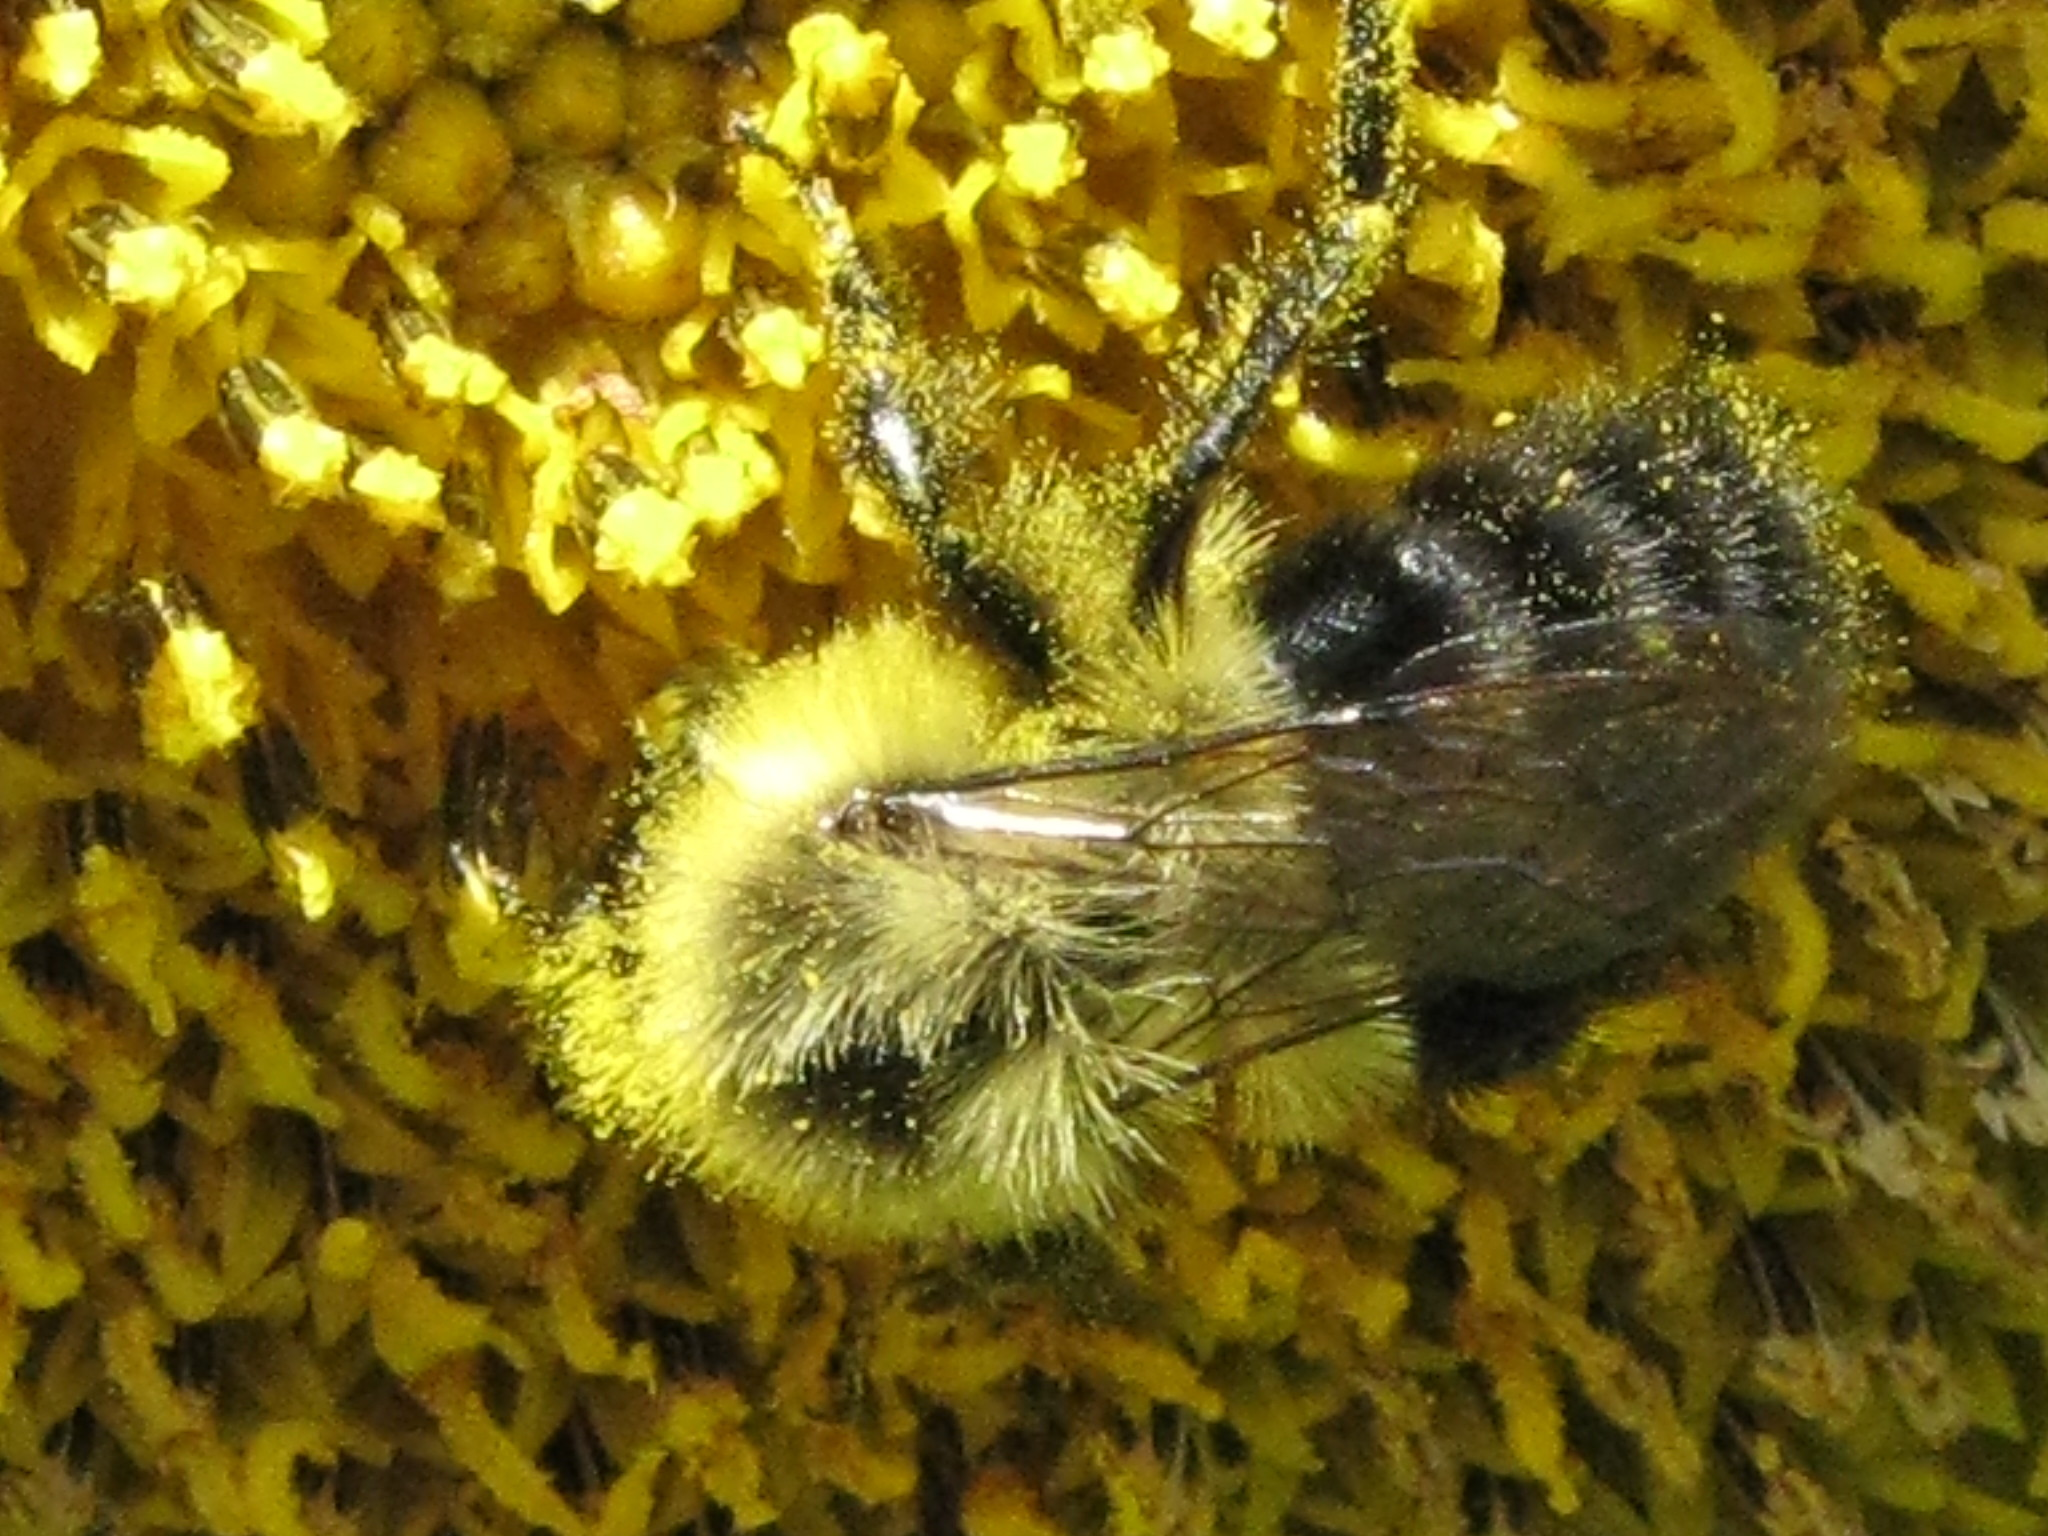 """pollen essay The names pollen and pollen midwest, our logos, designs, text, graphics, pictures and all other content on the site (collectively """"content"""") is the property of pollen midwest or the individuals who created it."""